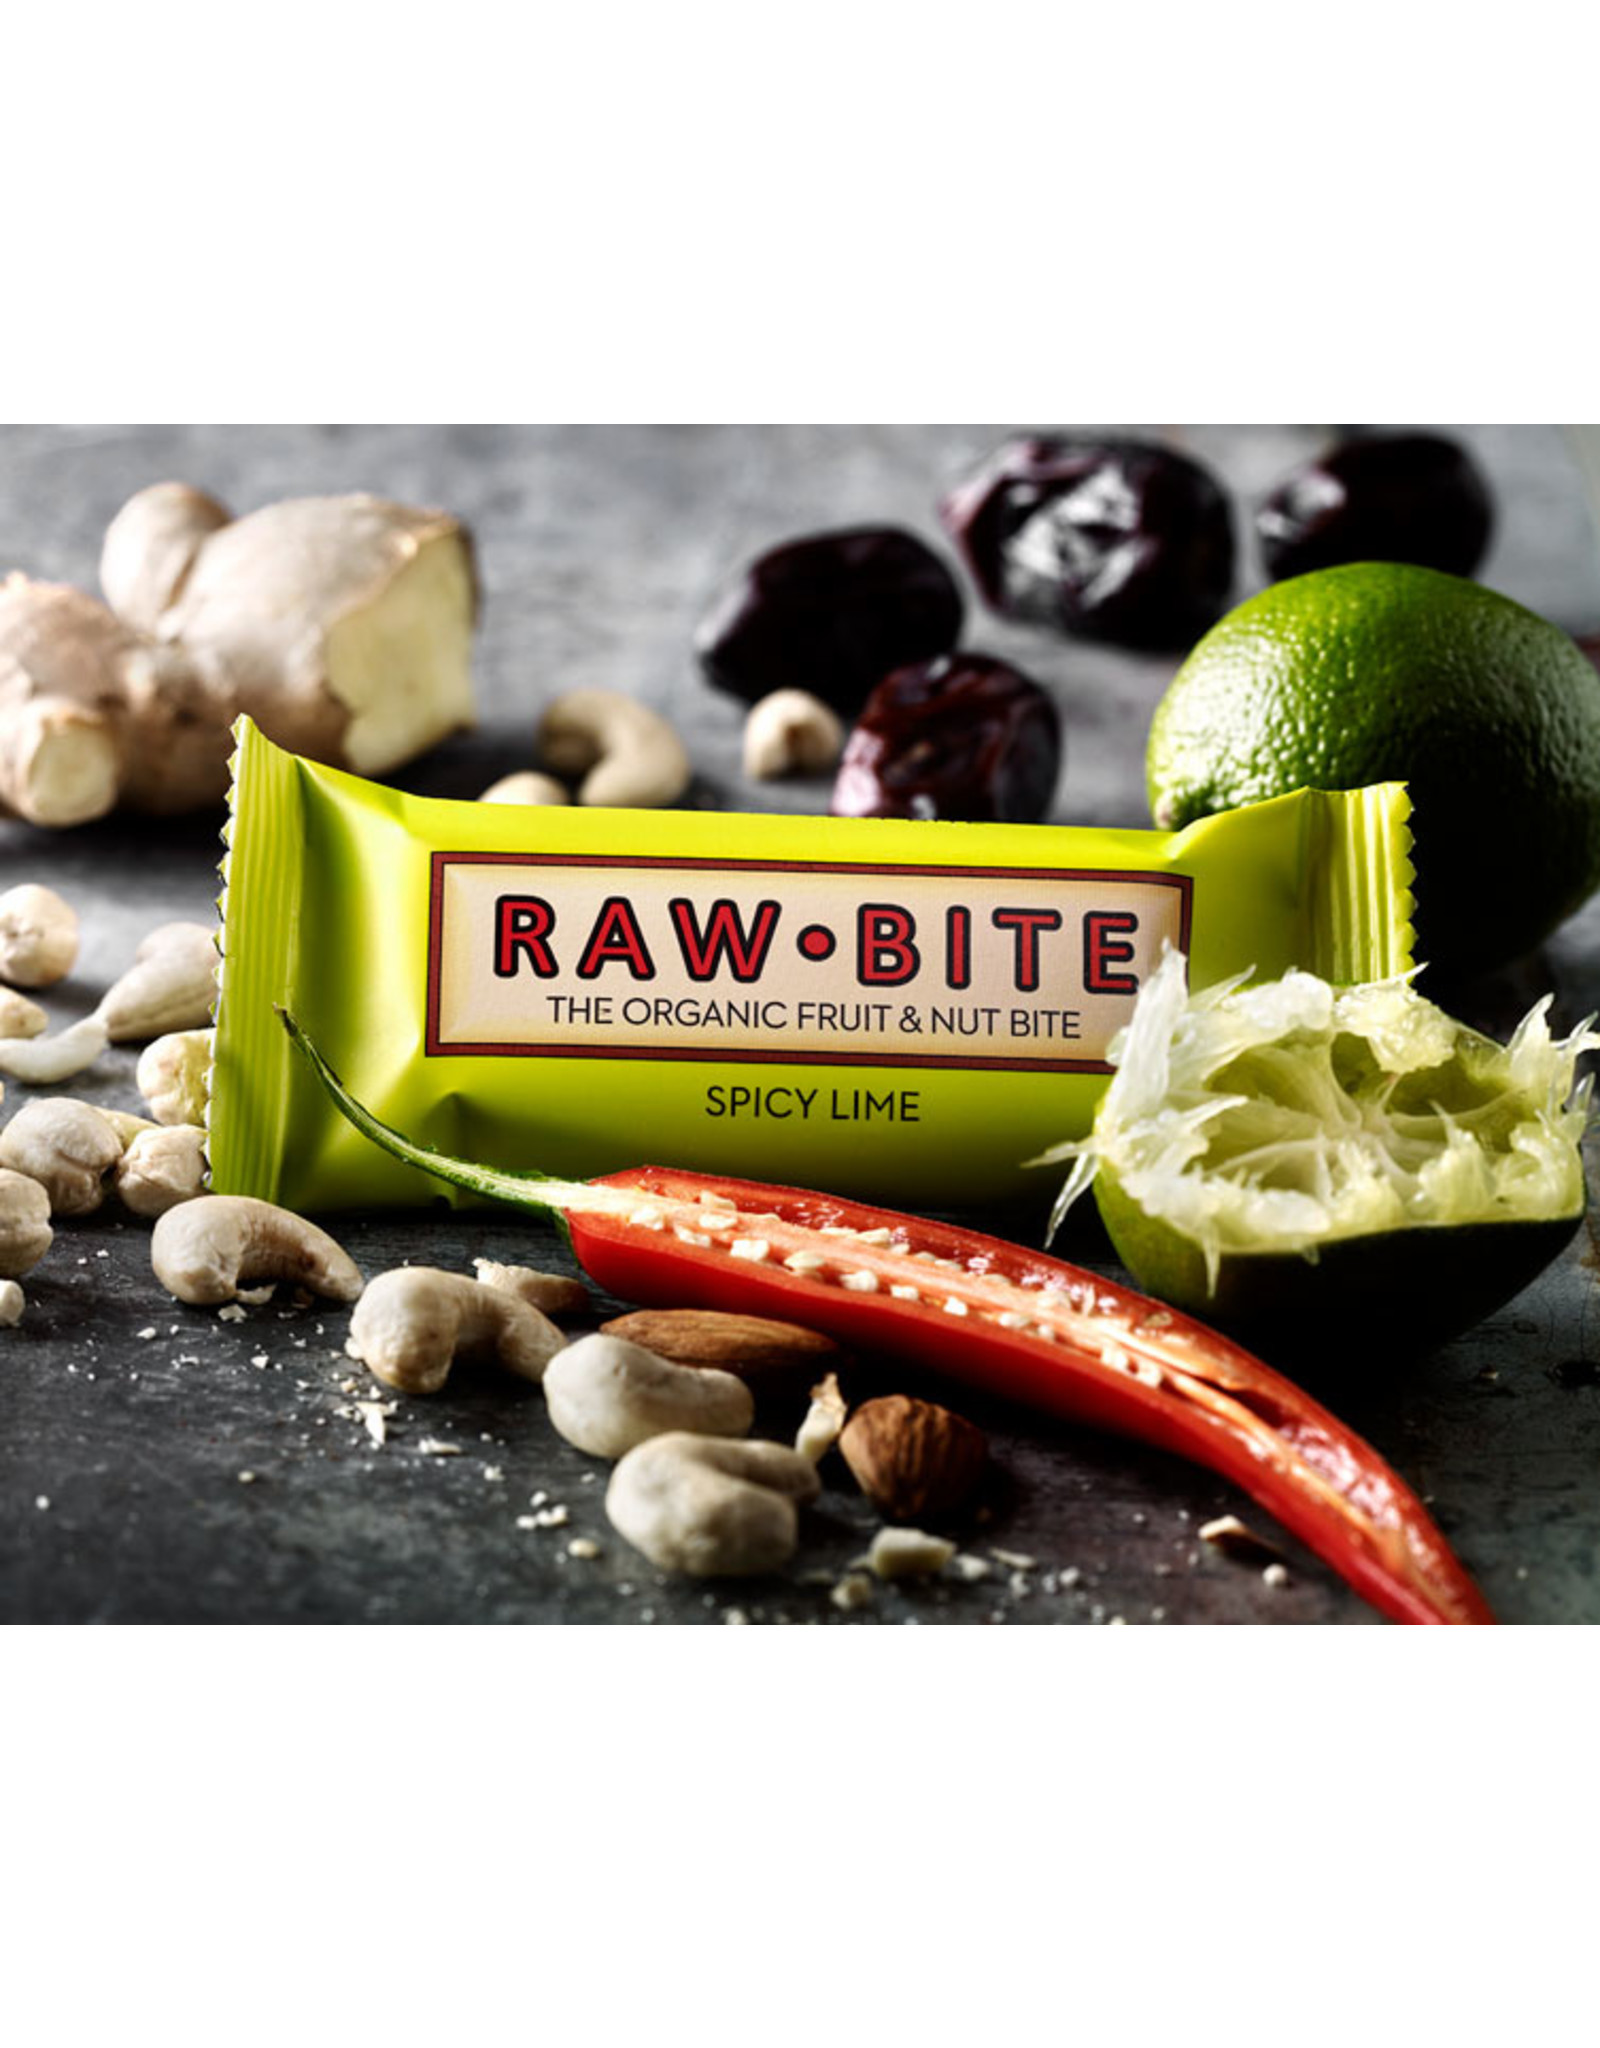 RAWBITE RAWBITE Spicy Lime